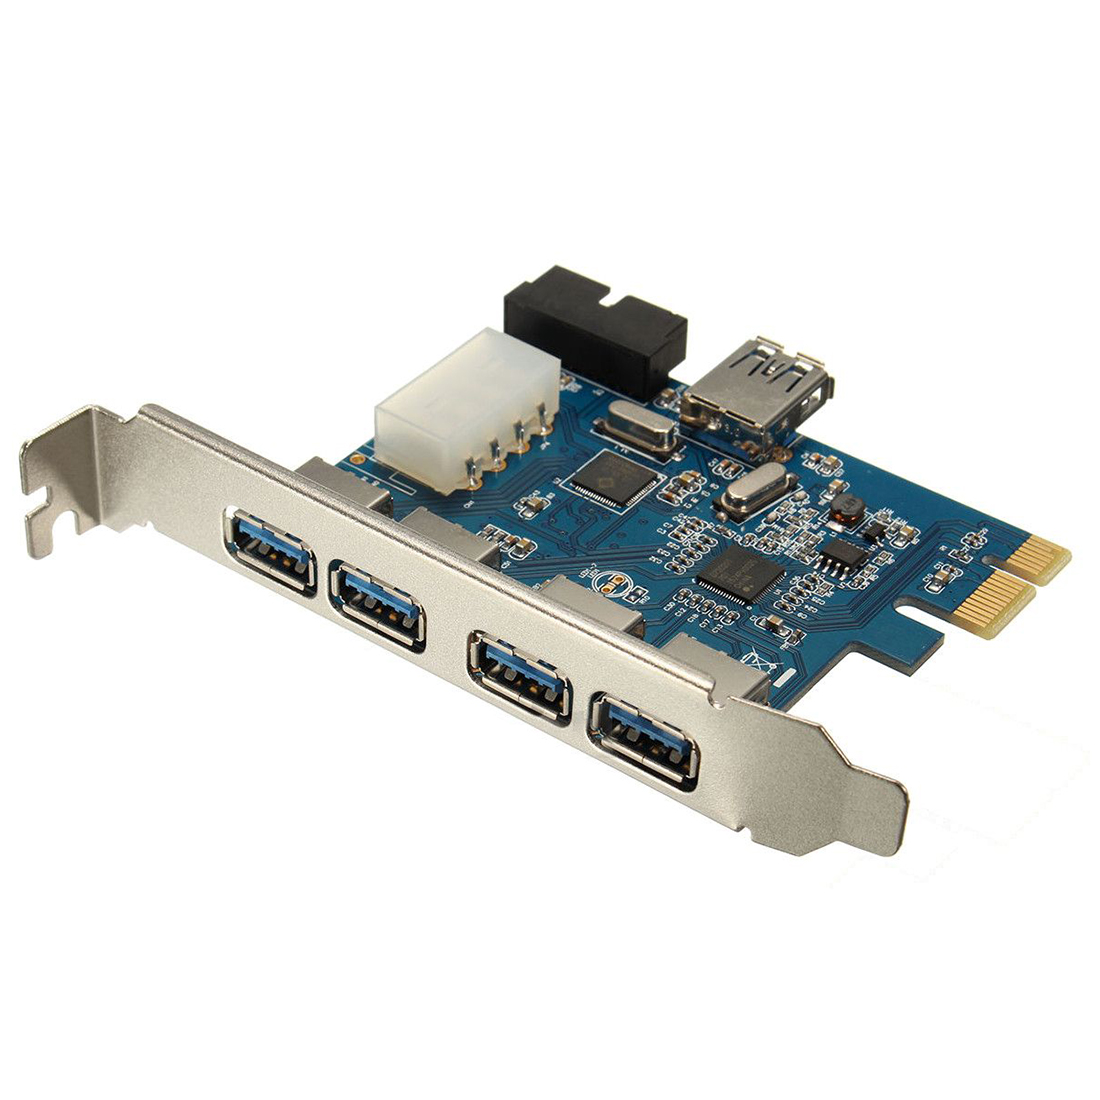 PCI-E Express Adapter A 5 USB 3.0 ports HUB New Internal Expansion Card hub adapter 3 usb 2 0 ports